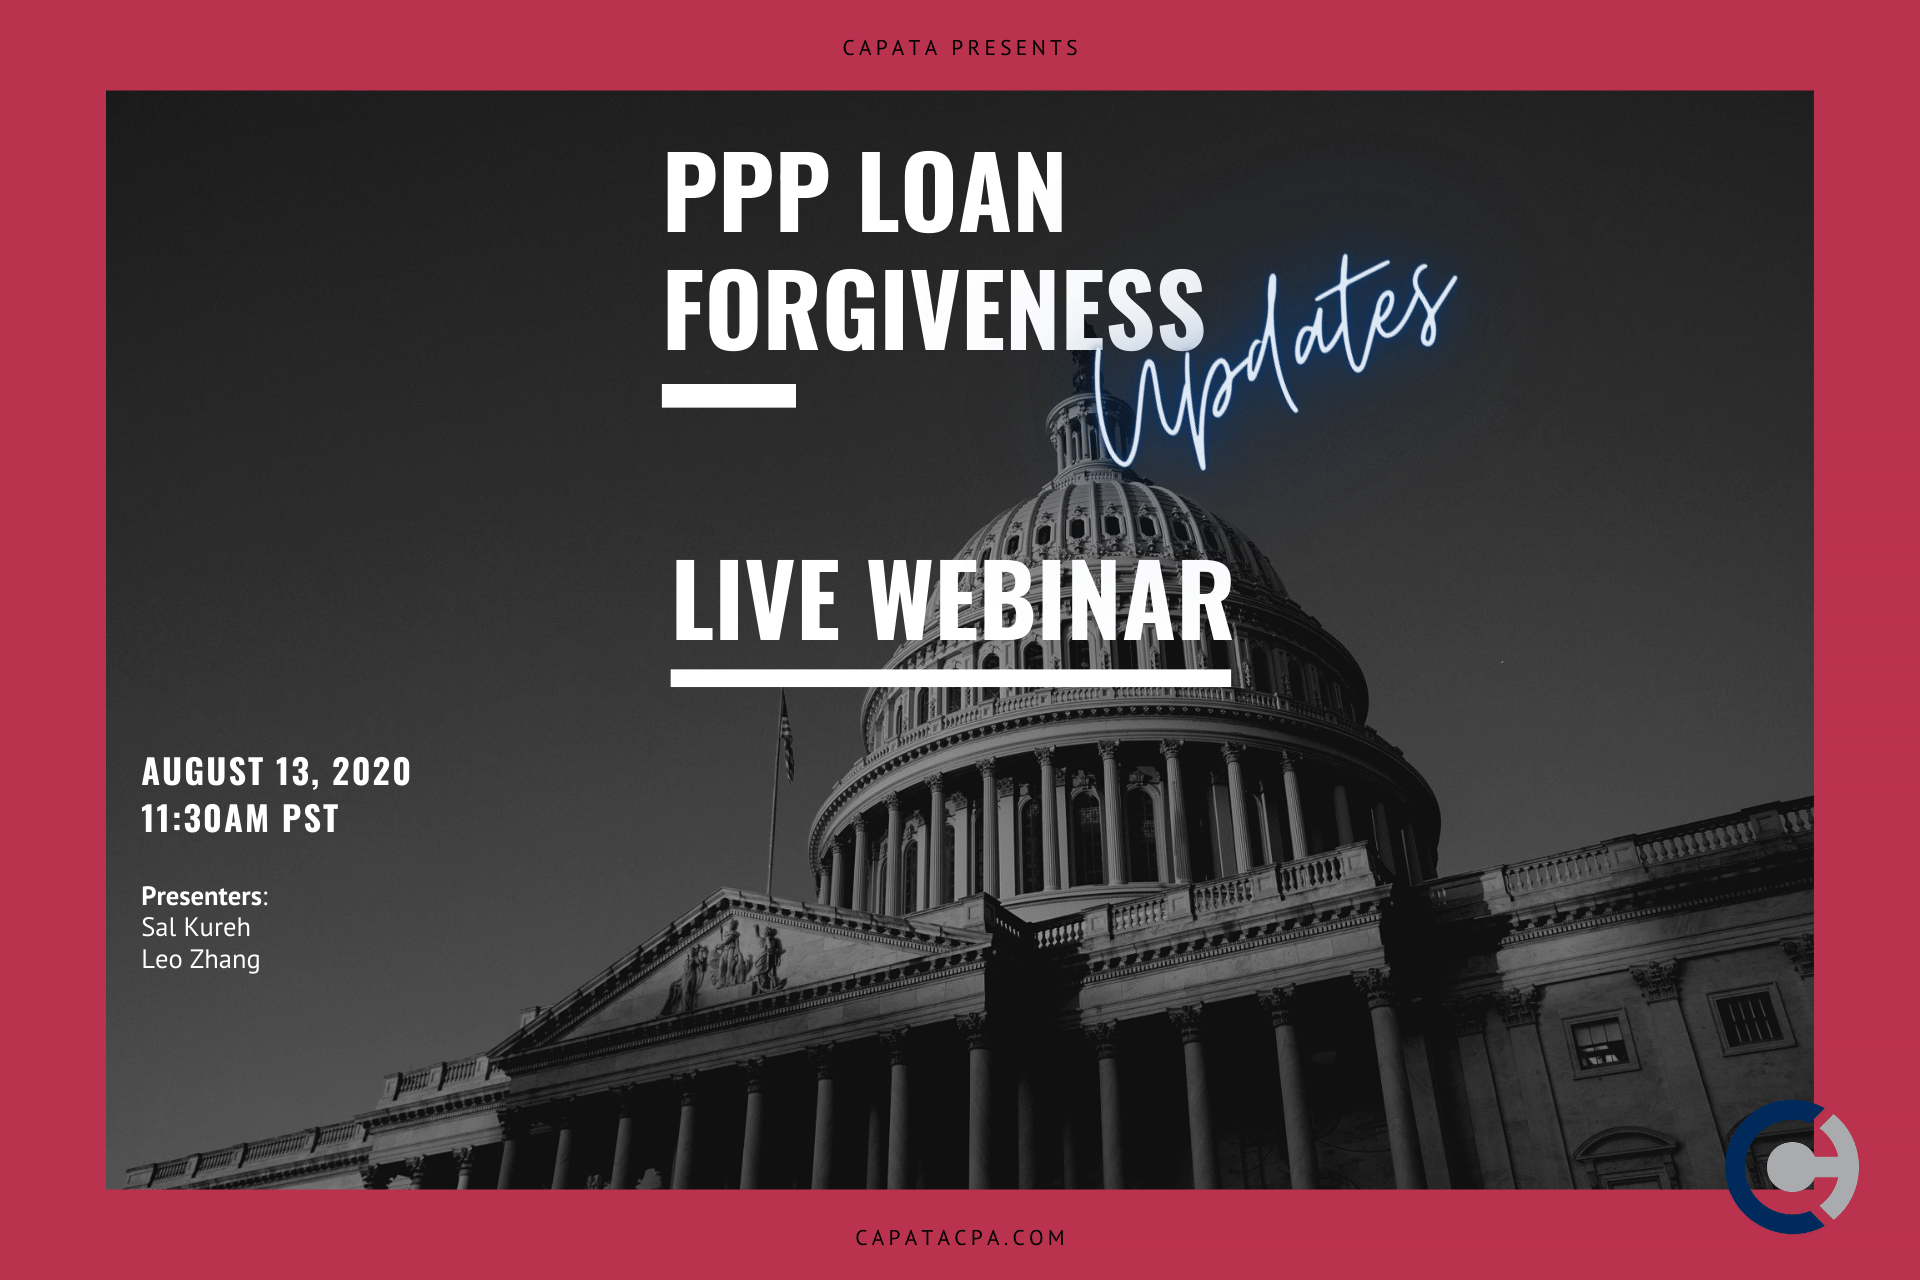 PPP Loan Forgiveness Updates - CAPATA